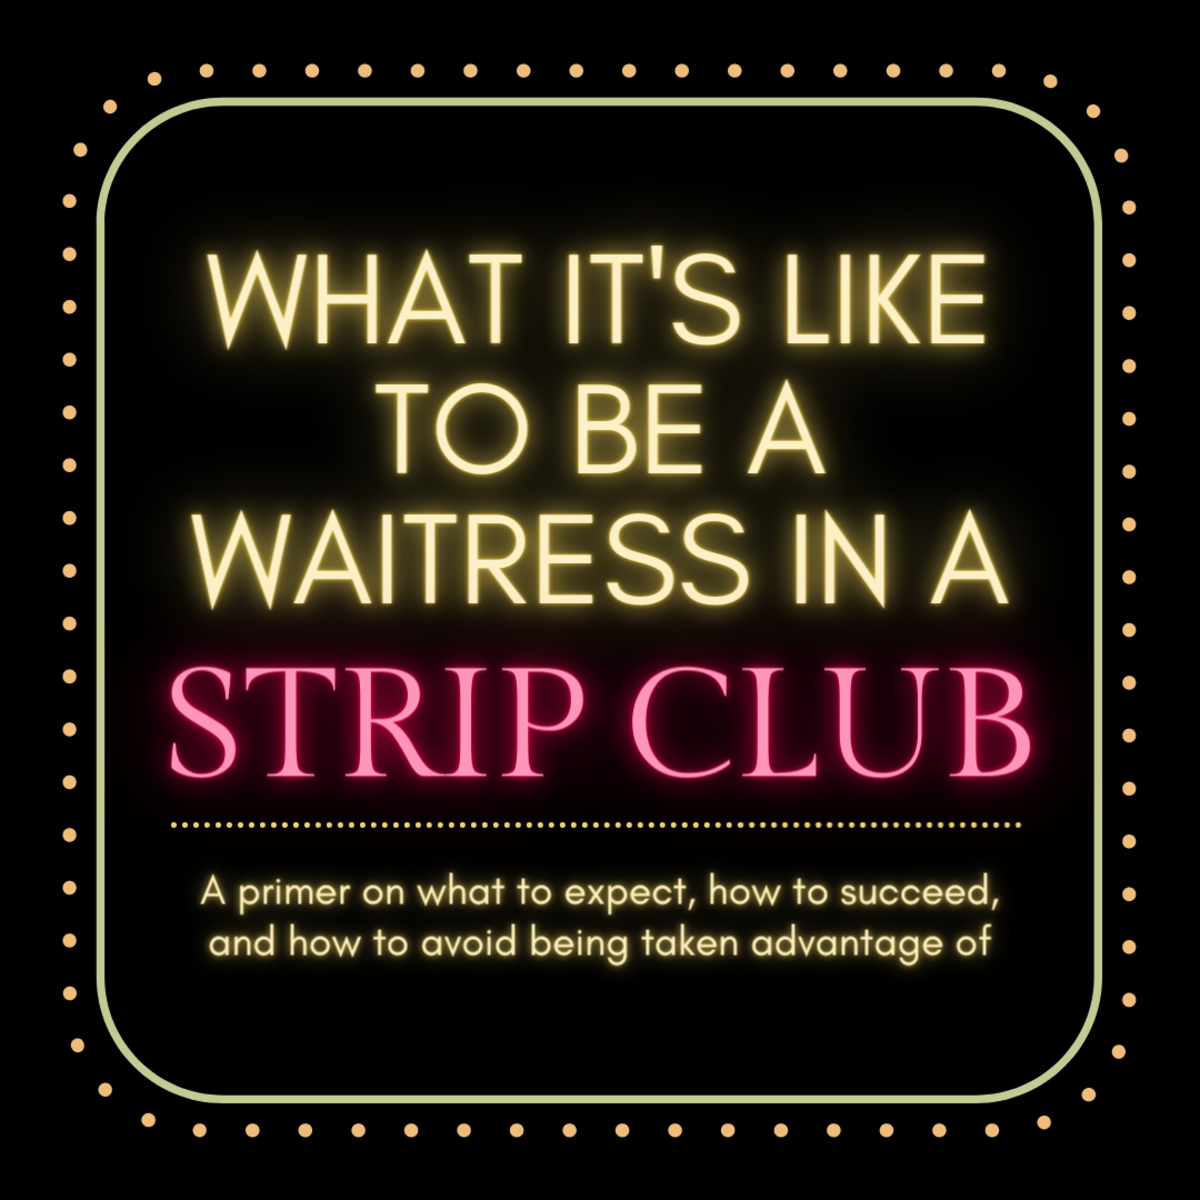 This article will break down everything you need to know about what it's like to be a waitress in a strip club.